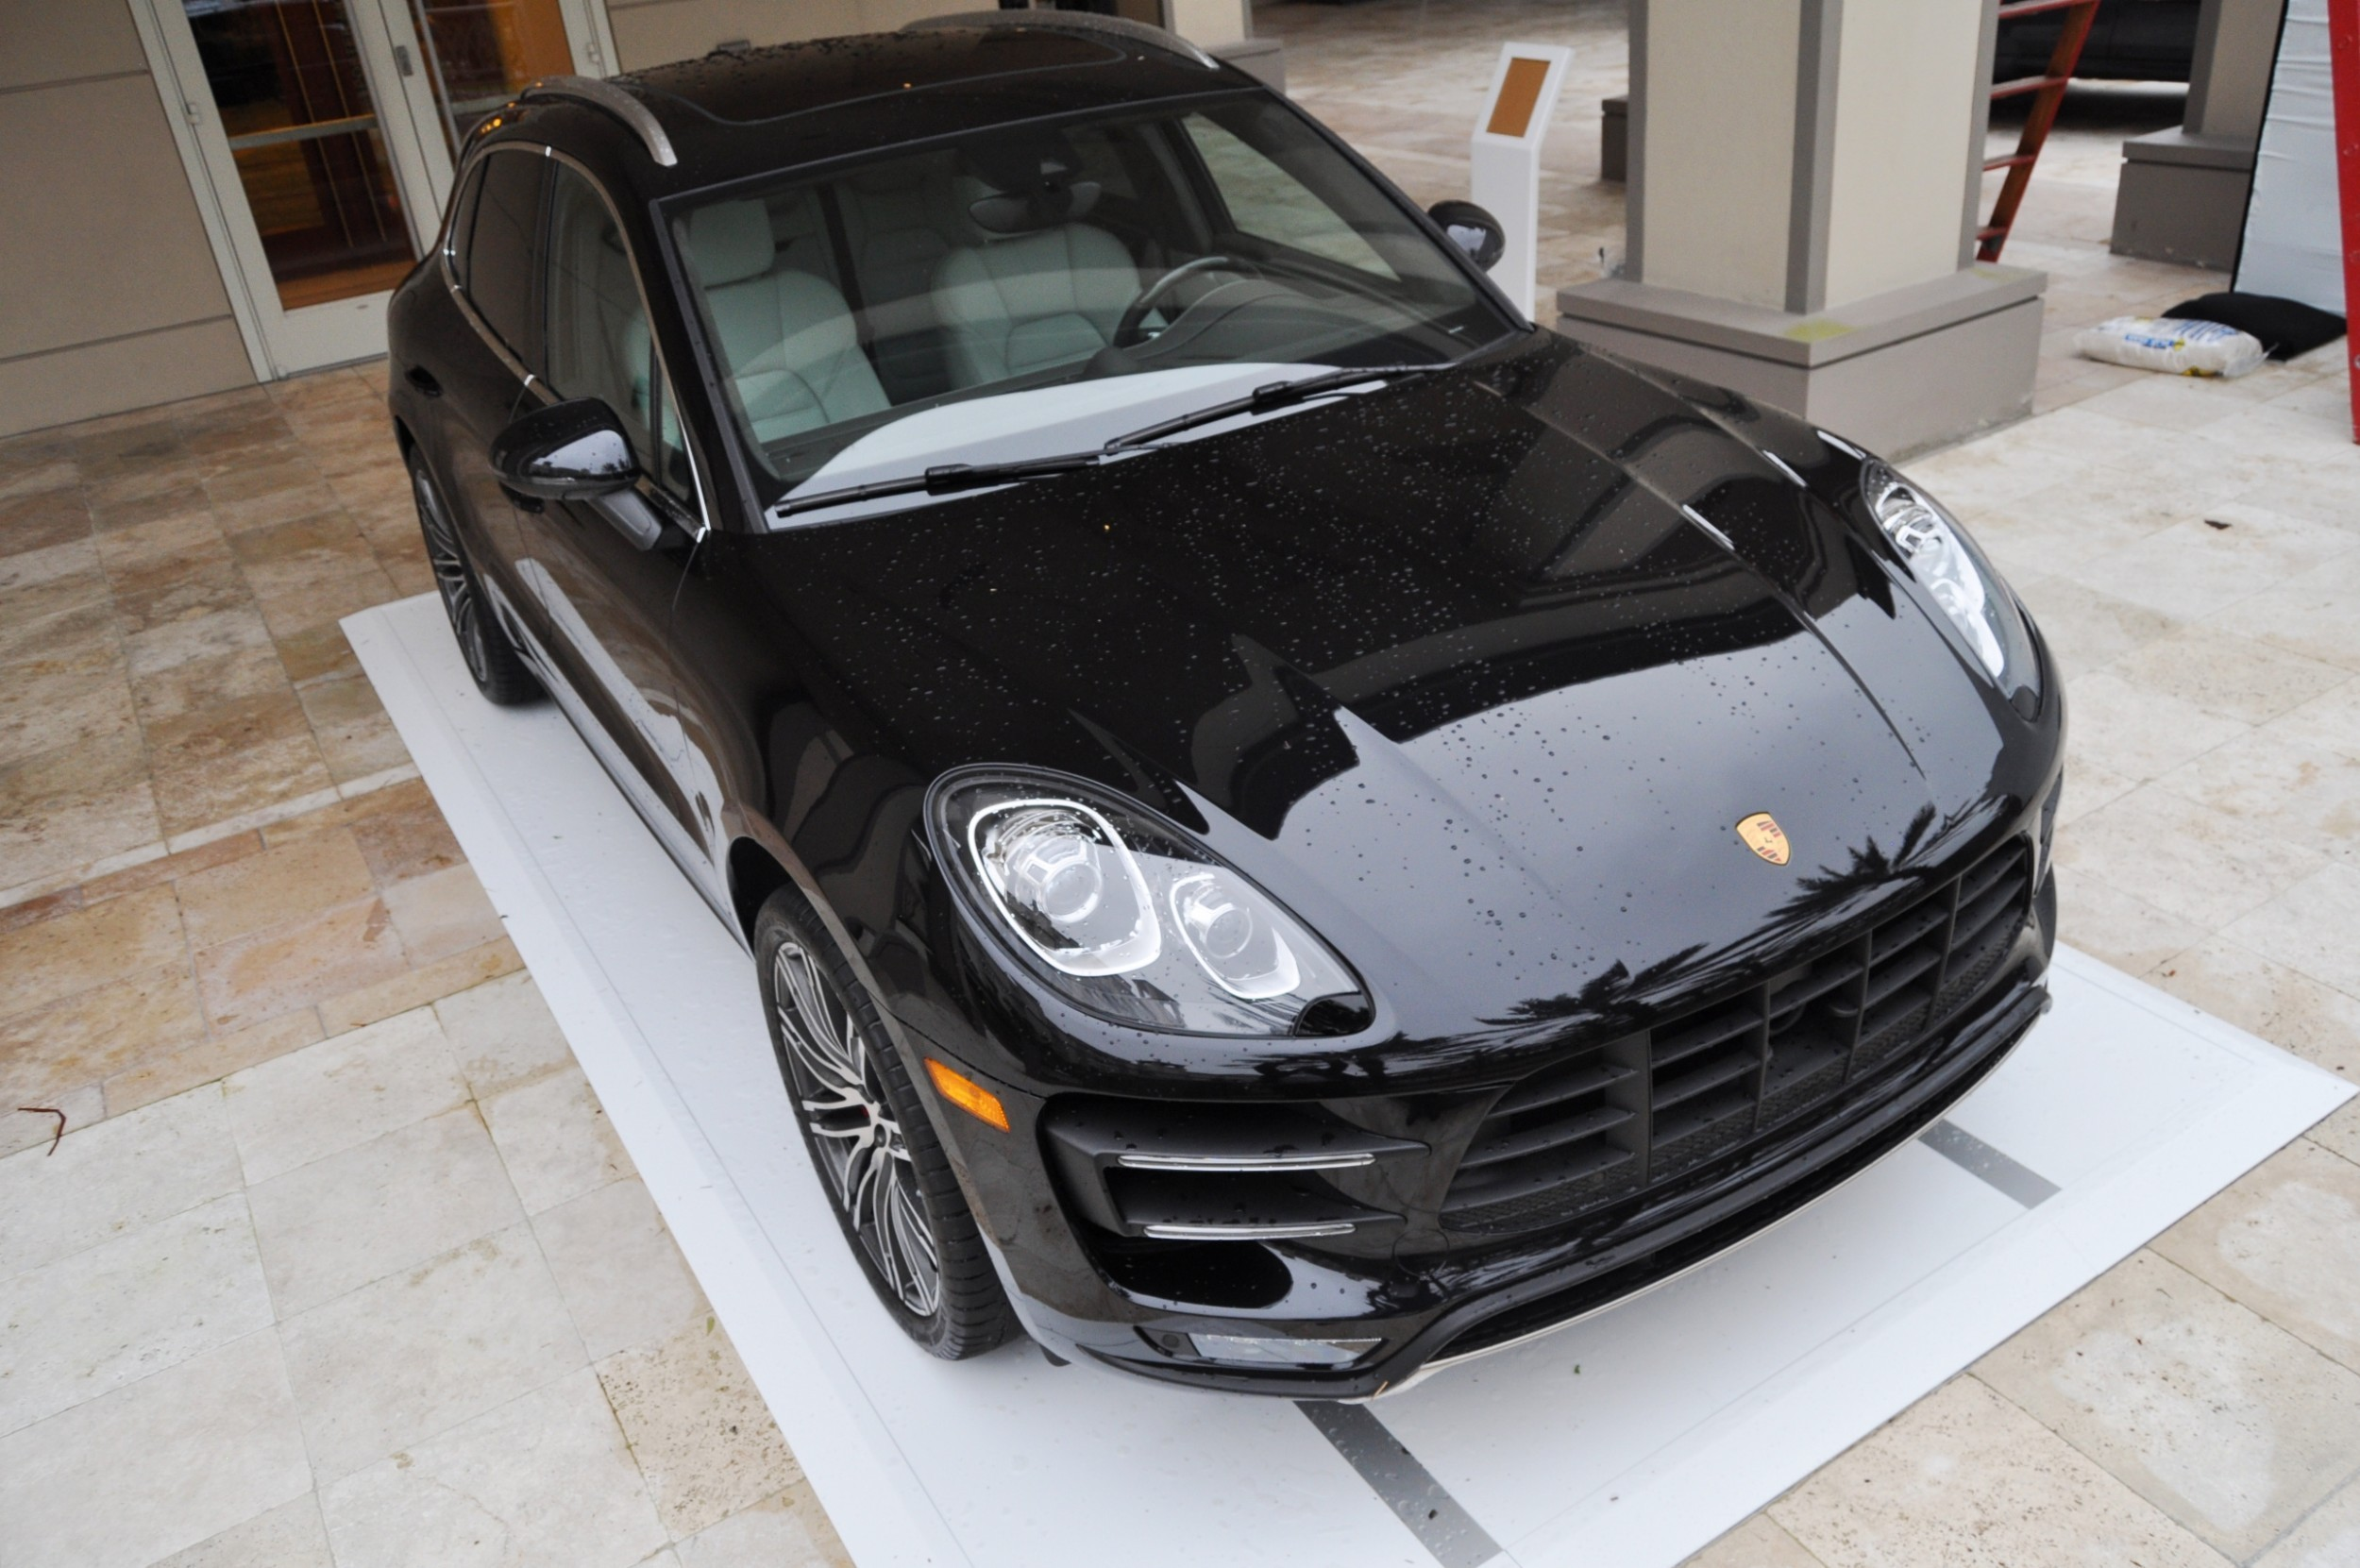 2015 Porsche Macan Turbo -- Looking Amazing, Athletic and Nimble -- 50+ Real-Life Photos Inside and Out 16